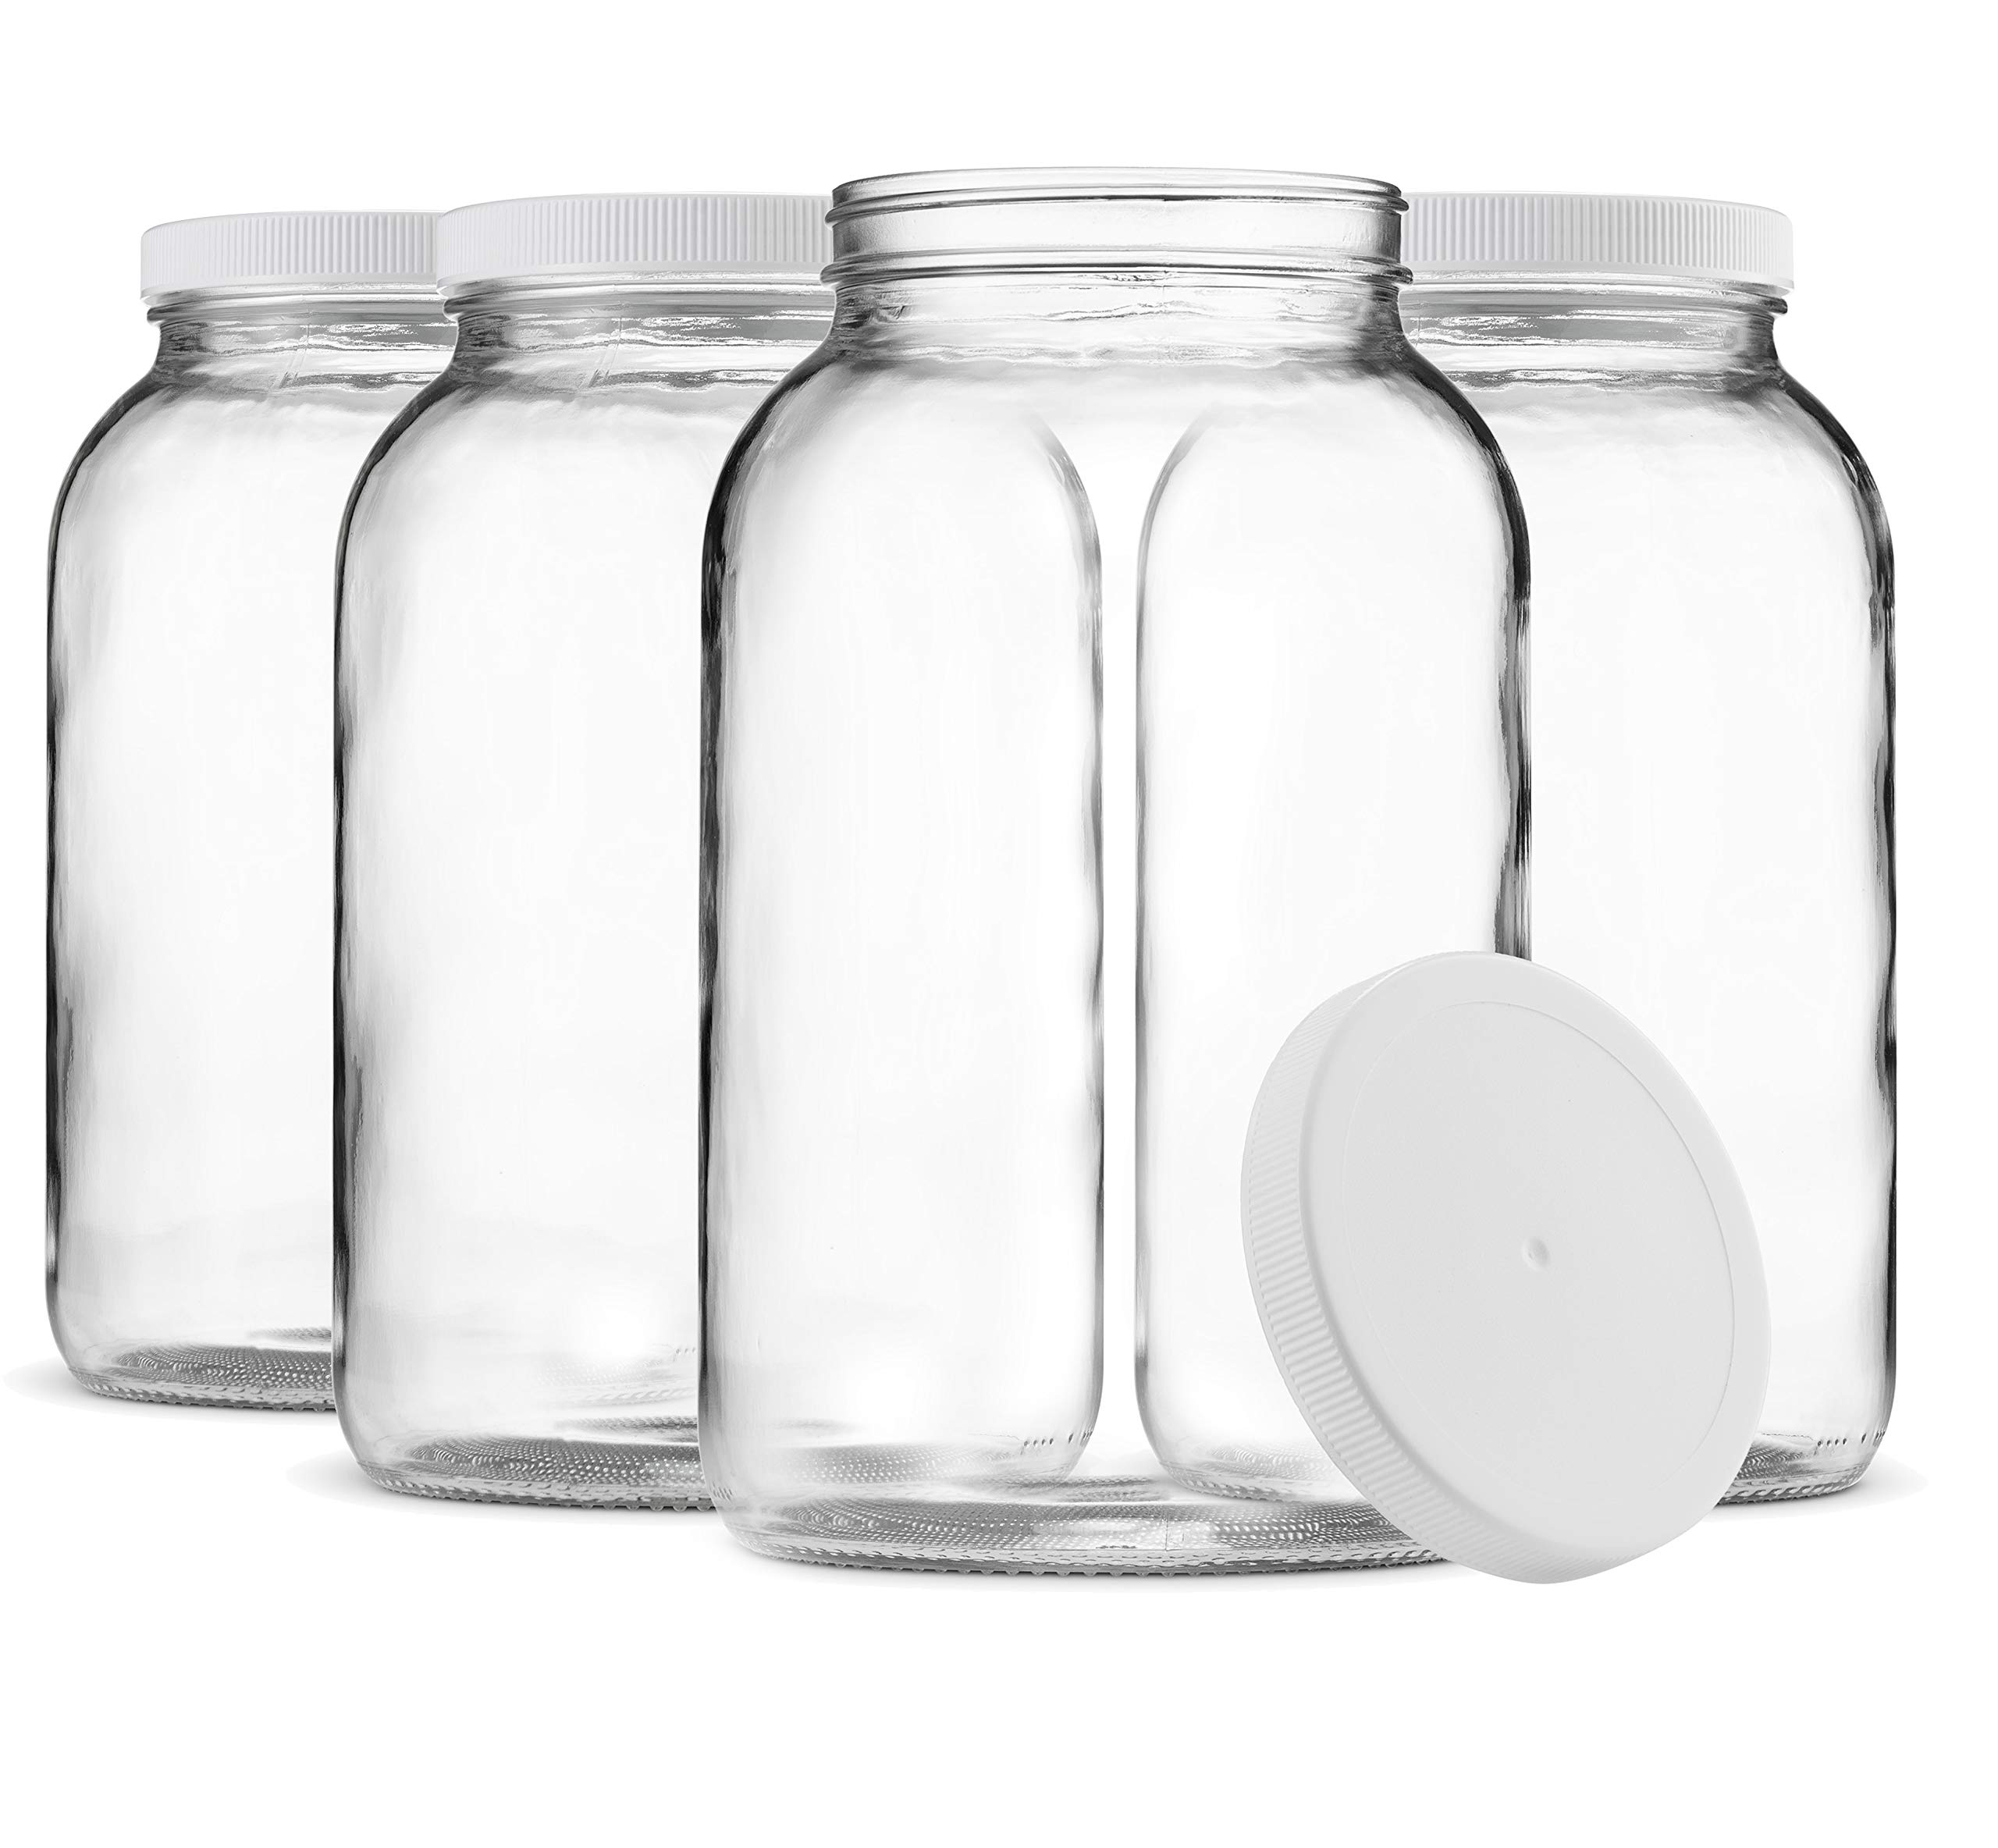 Paksh Novelty 1-Gallon Glass Jar Wide Mouth with Airtight Plastic Lid - USDA Approved BPA-Free Dishwasher Safe Mason Jar for Fermenting, Kombucha, Kefir, Storing and Canning Uses, Clear (4 Pack) by Paksh Novelty